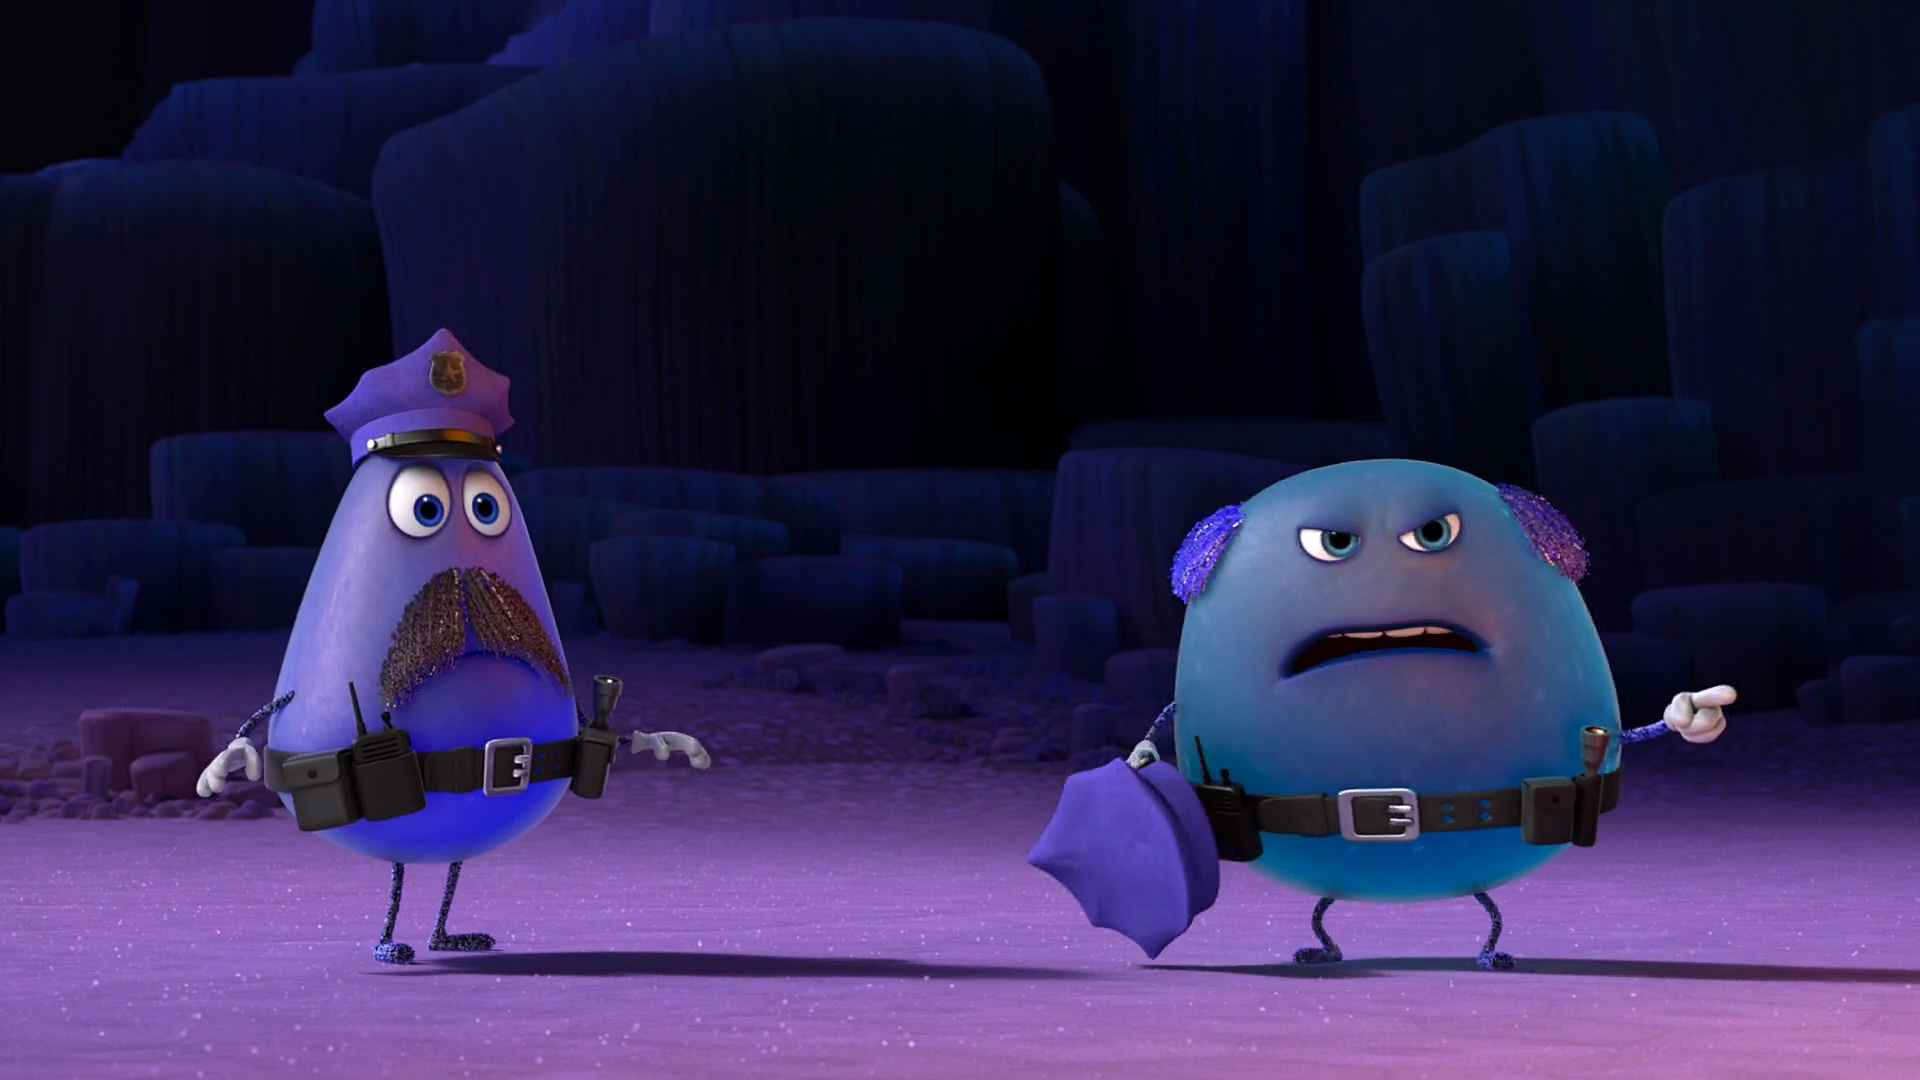 frank dave pixar disney character personnage vice-versa inside out